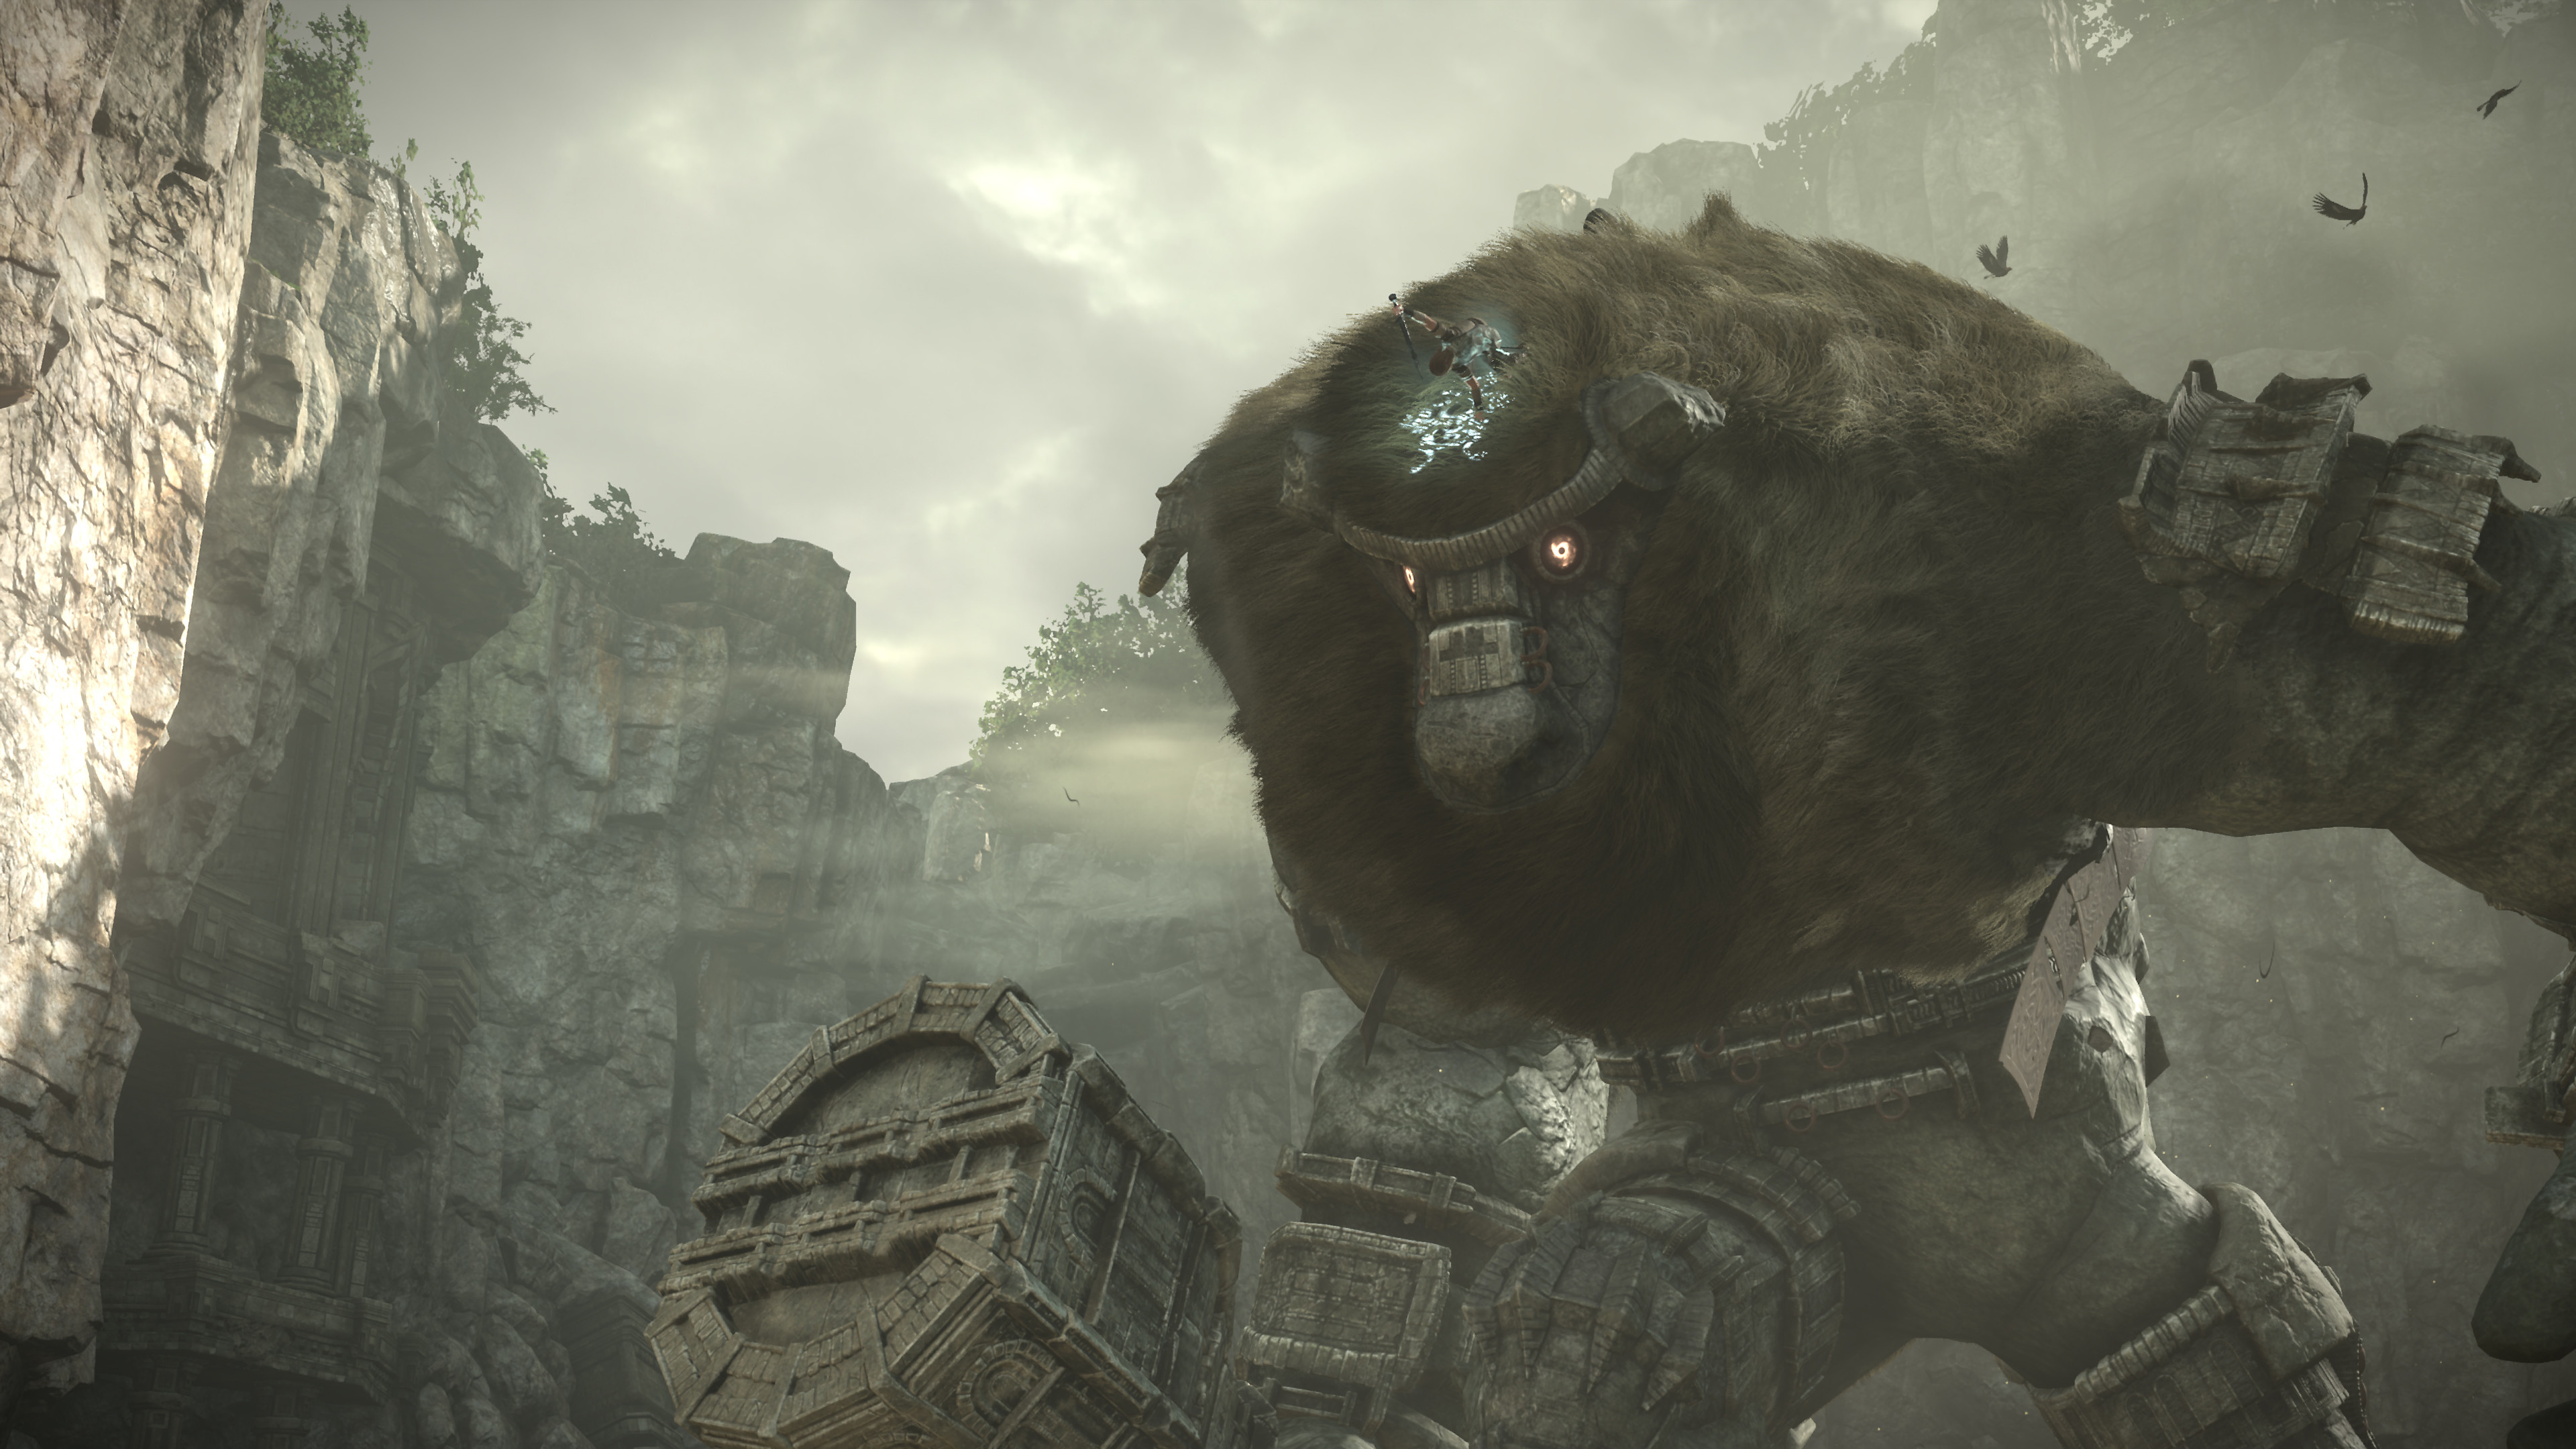 shadow-of-the-colossus-screen-01-ps4-us-08sep17.jpg